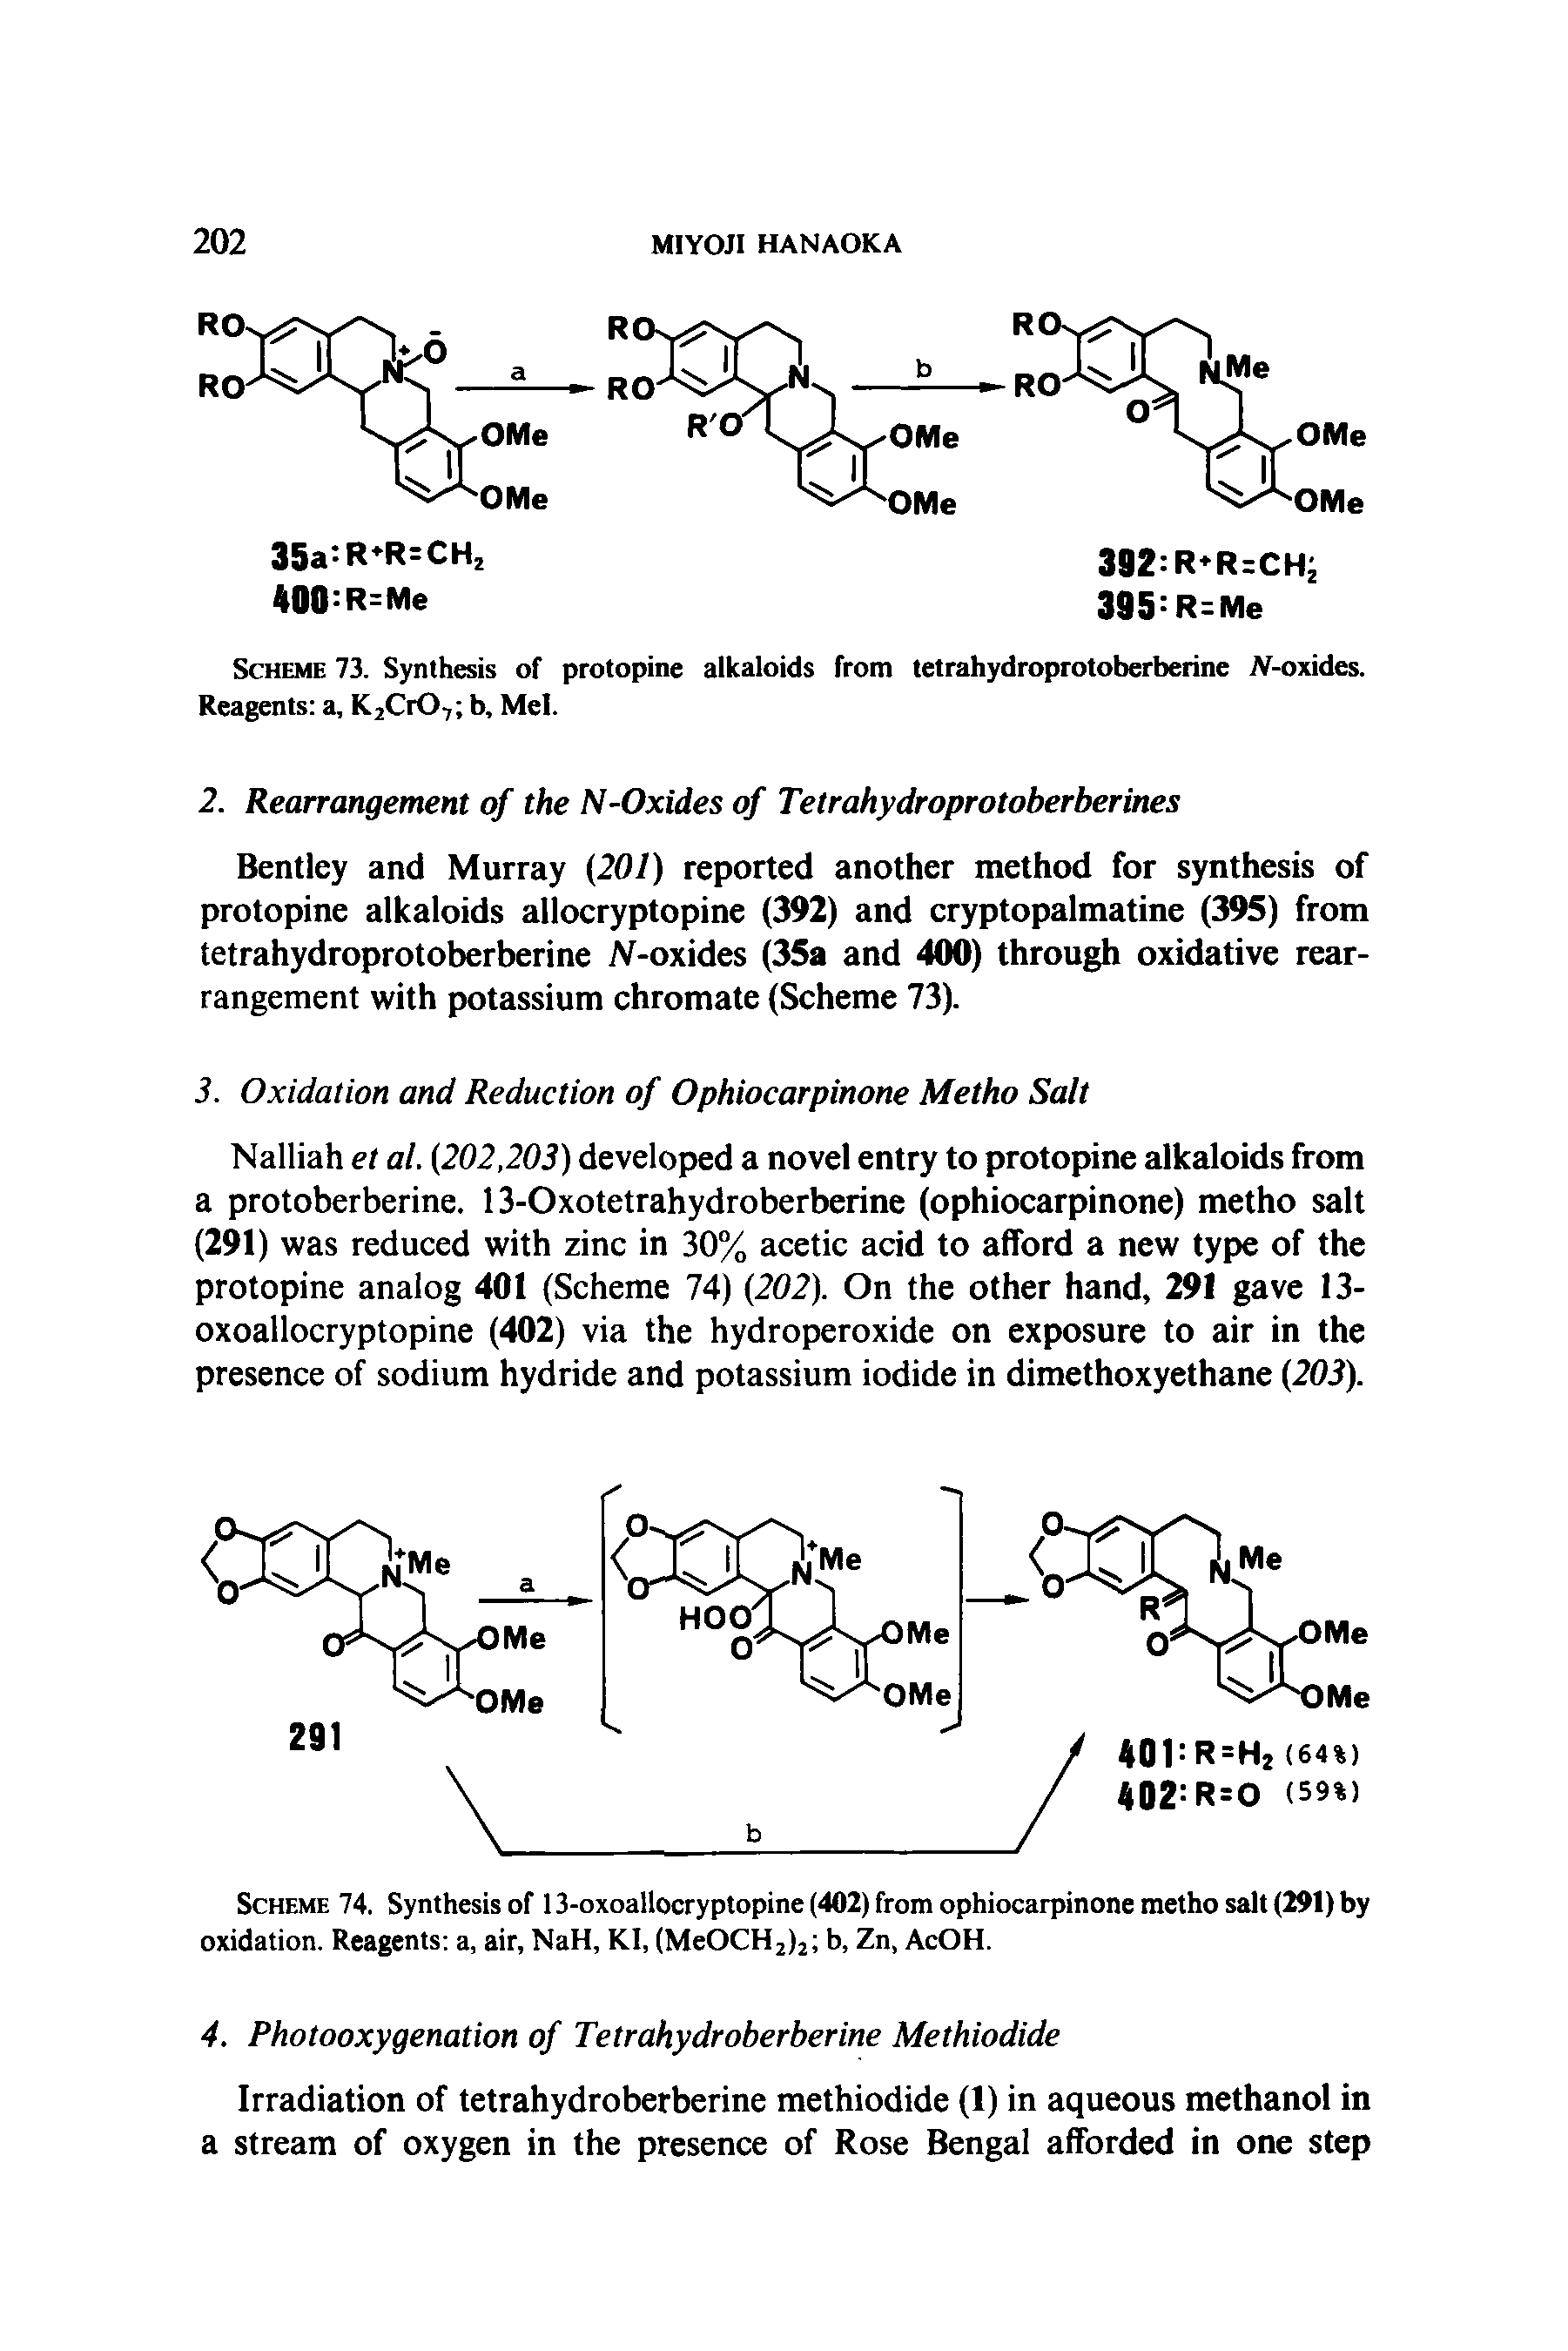 Scheme 73. Synthesis of protopine alkaloids from tetrahydroprotoberberine JV-oxides. Reagents a, K2Cr07 b, Mel.